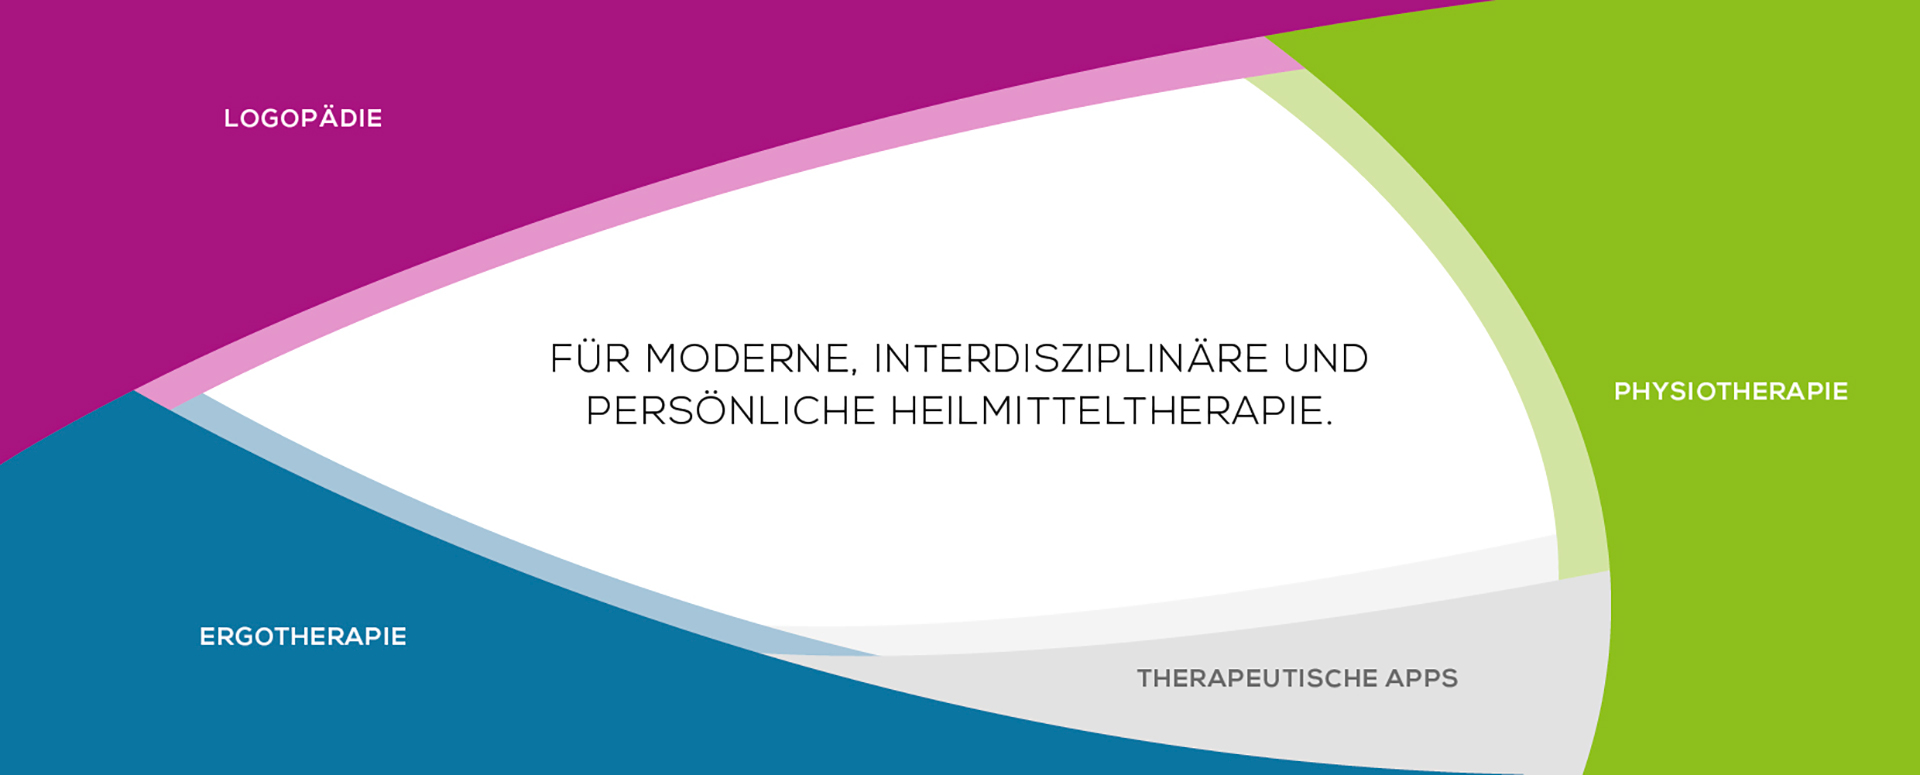 theraphysia_header_interdisziplinaer_1920px